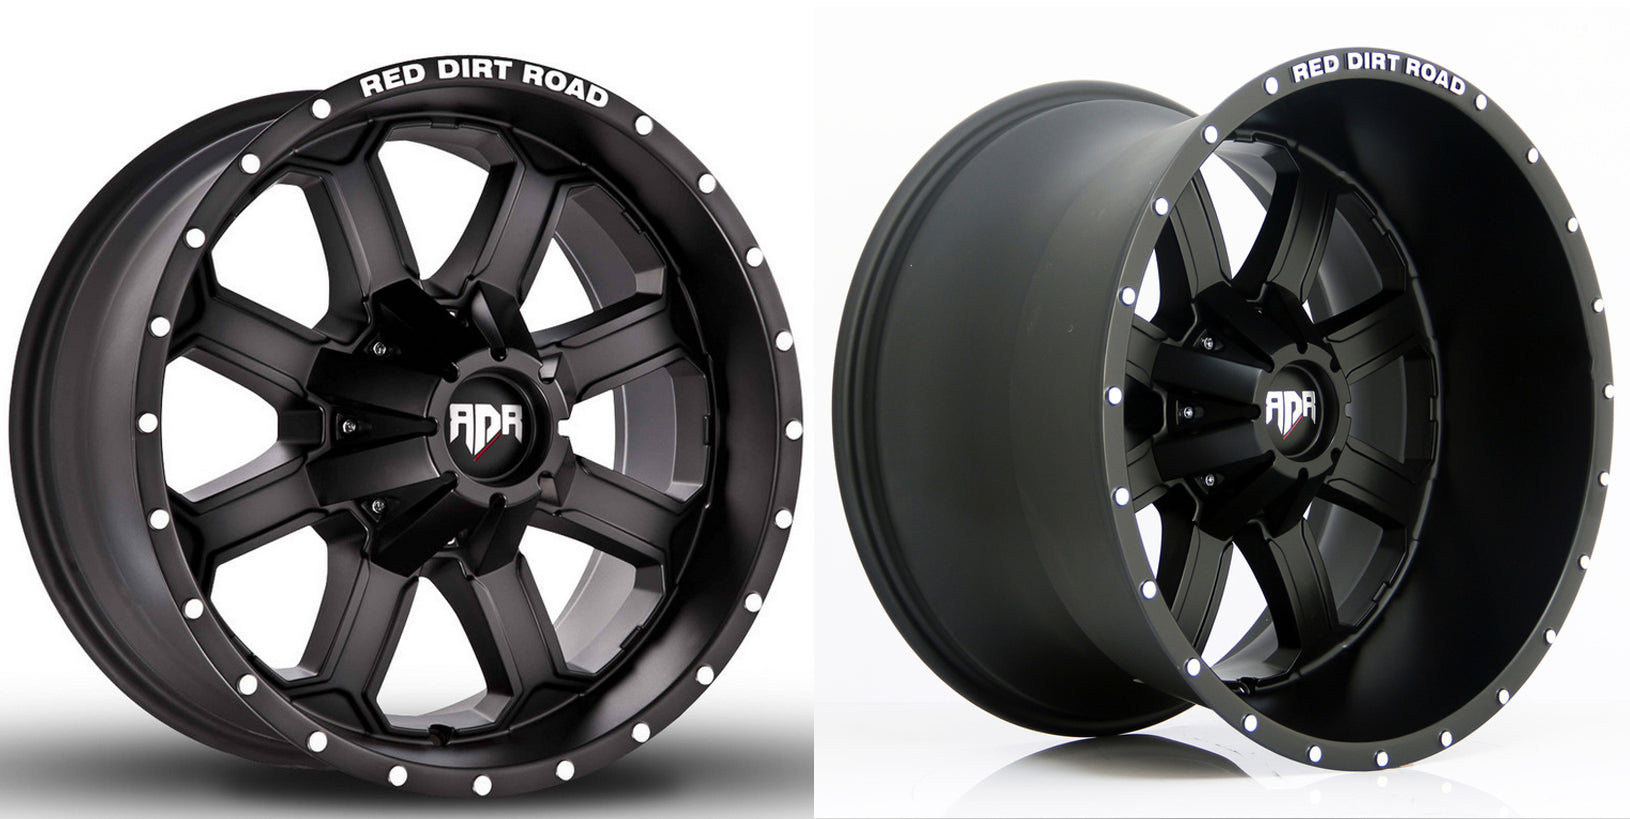 RDR Wheels Off Road Trucks and SUVs - M2motorsportinc.com